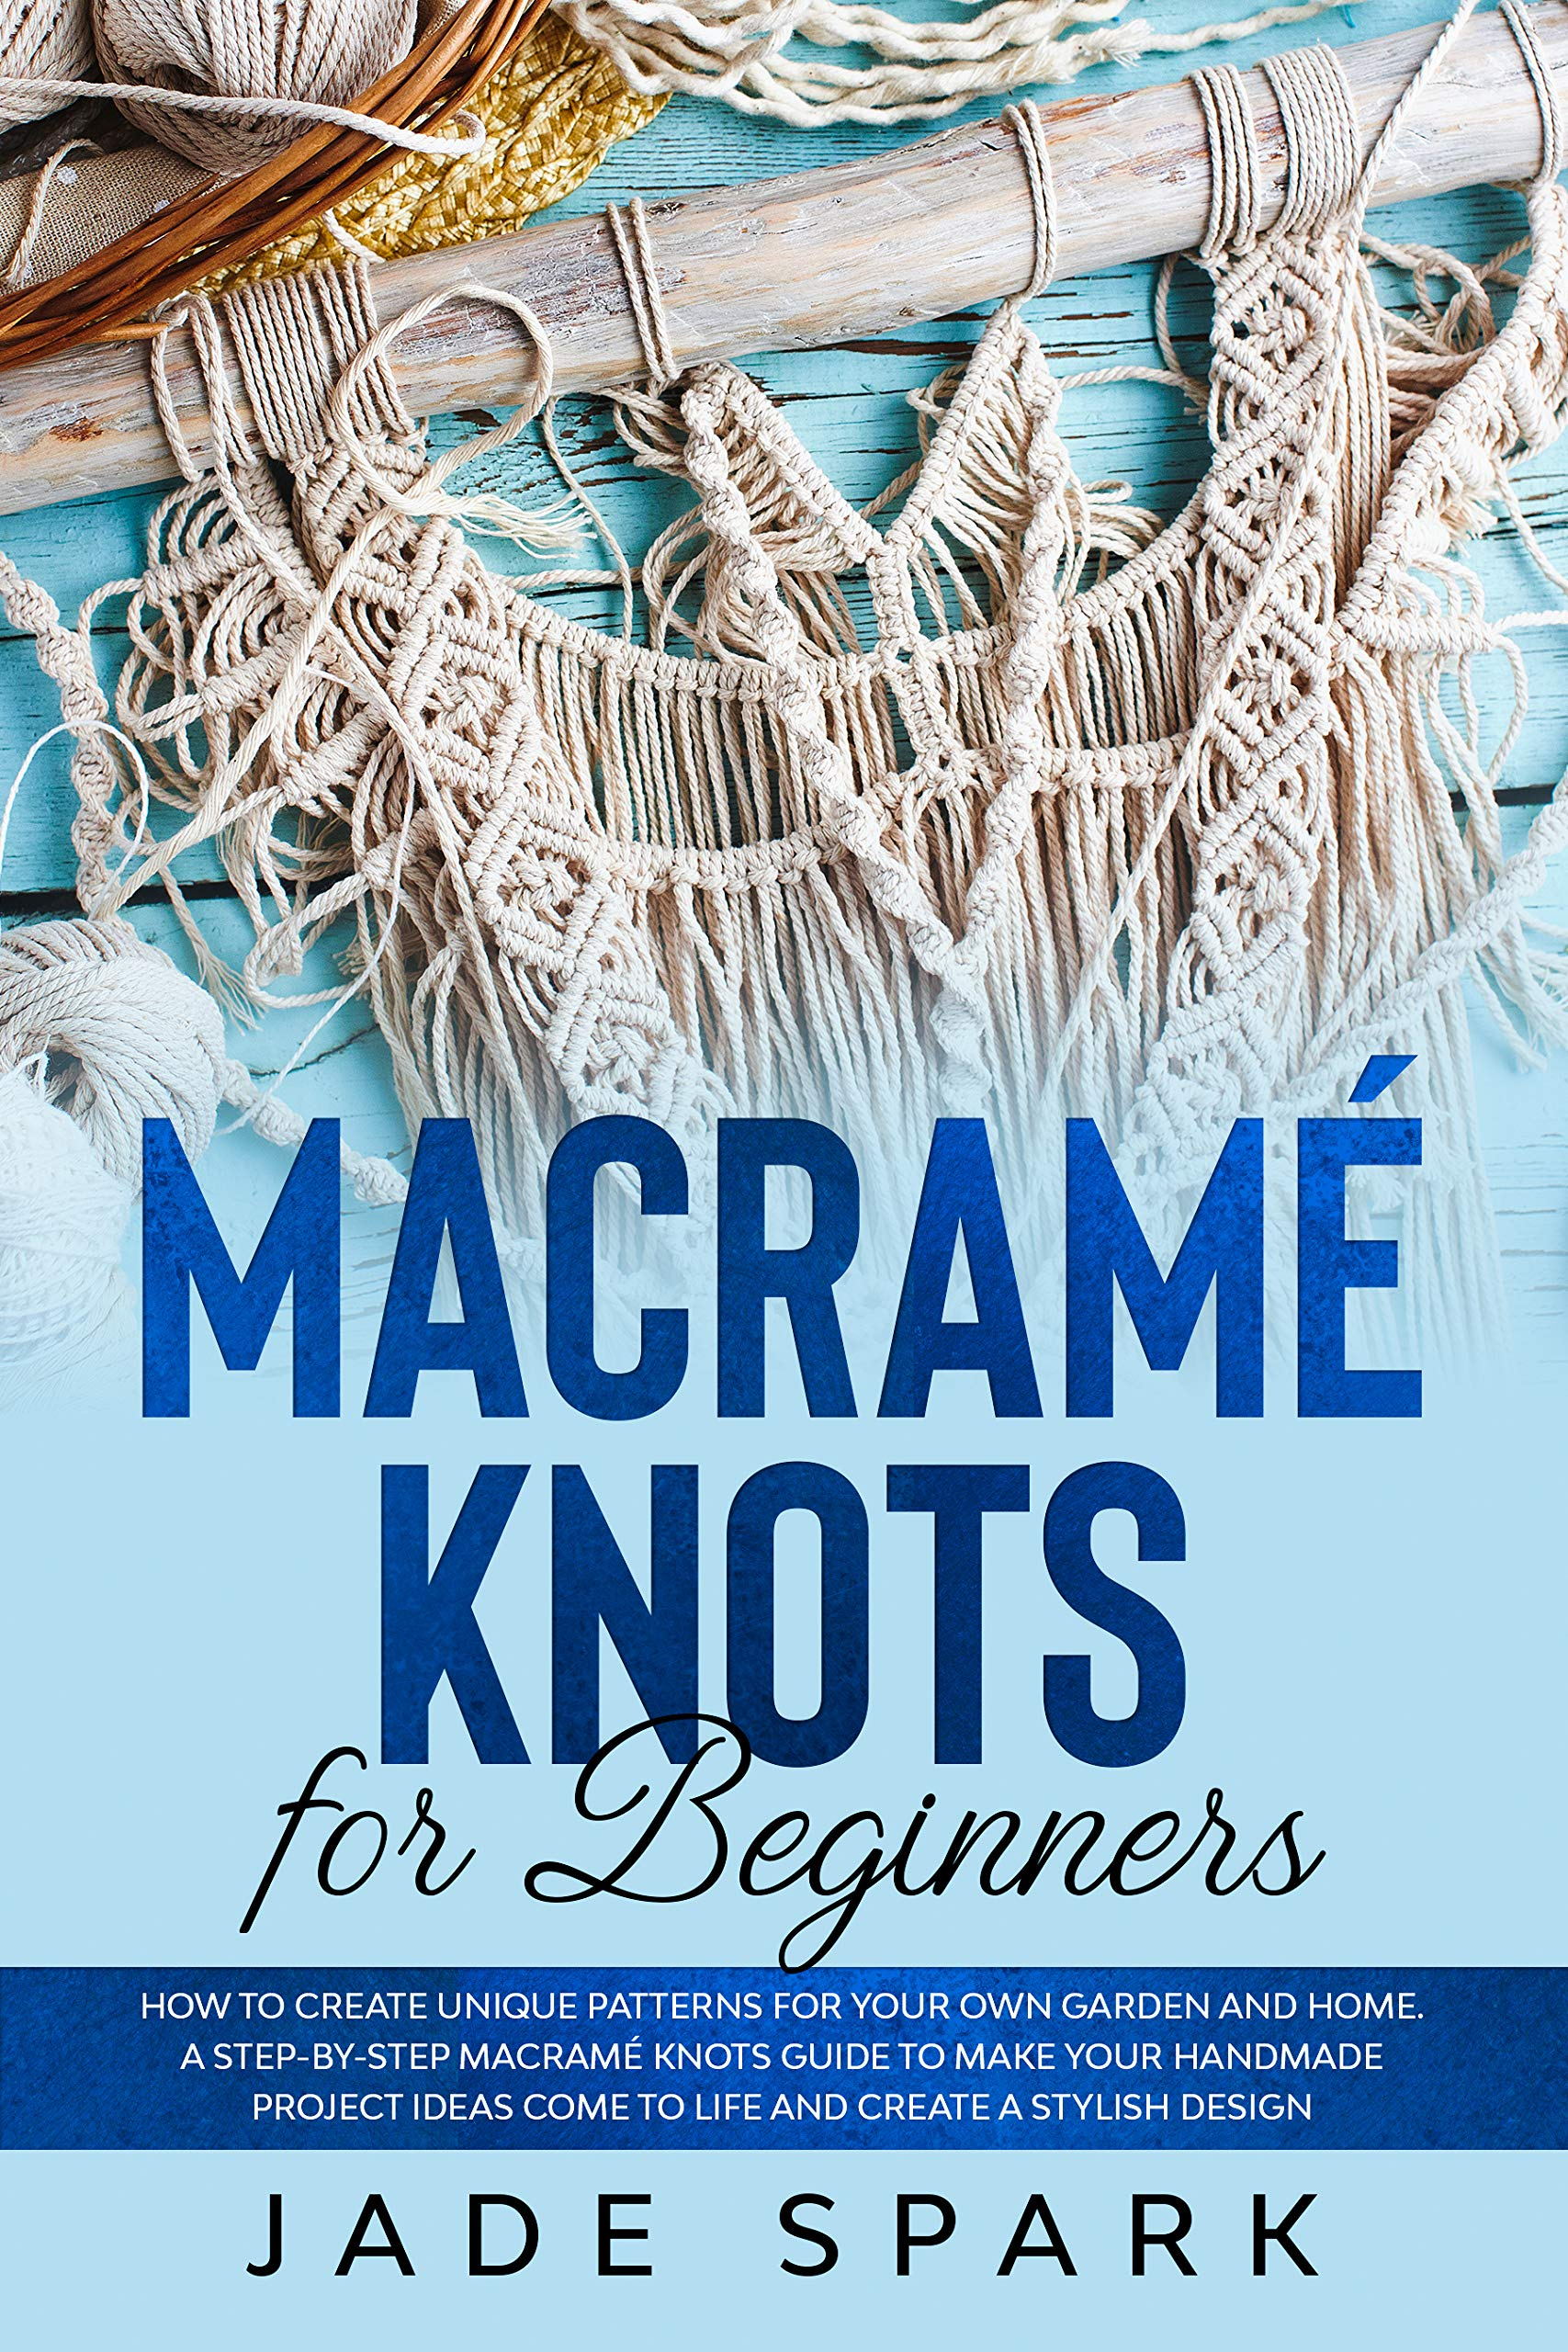 Macramé Knots for Beginners: How to Create Unique Patterns for Your Own Garden and Home. A Step-by-Step Macramé Knots Guide to Make Your Handmade Project ... Come to Life and Create a Stylish Design